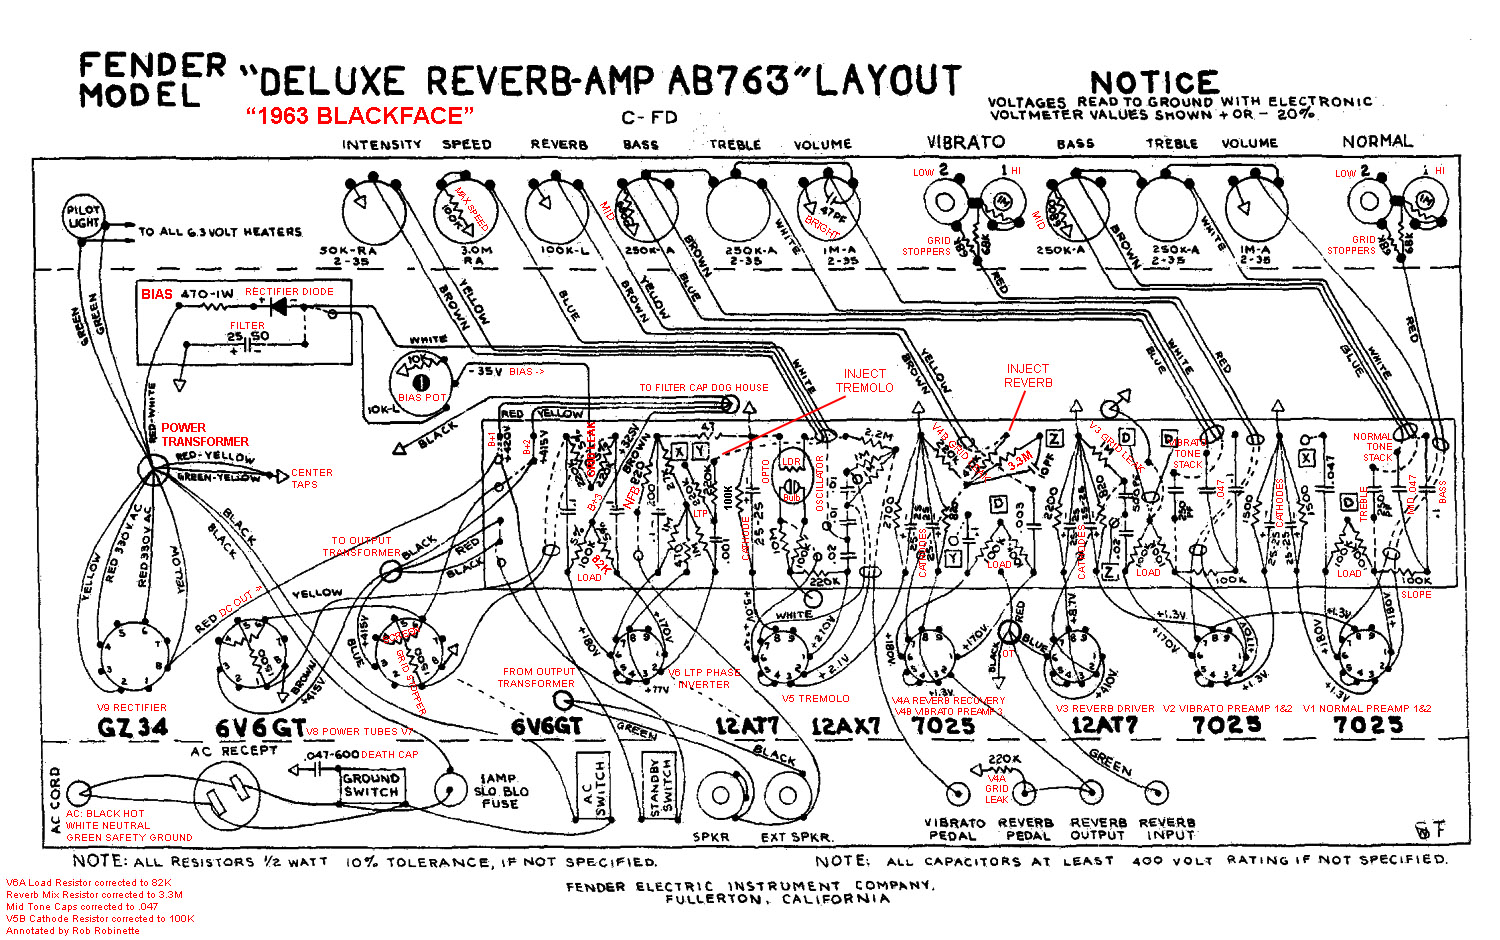 hight resolution of ab763 deluxe reverb layout with annotations